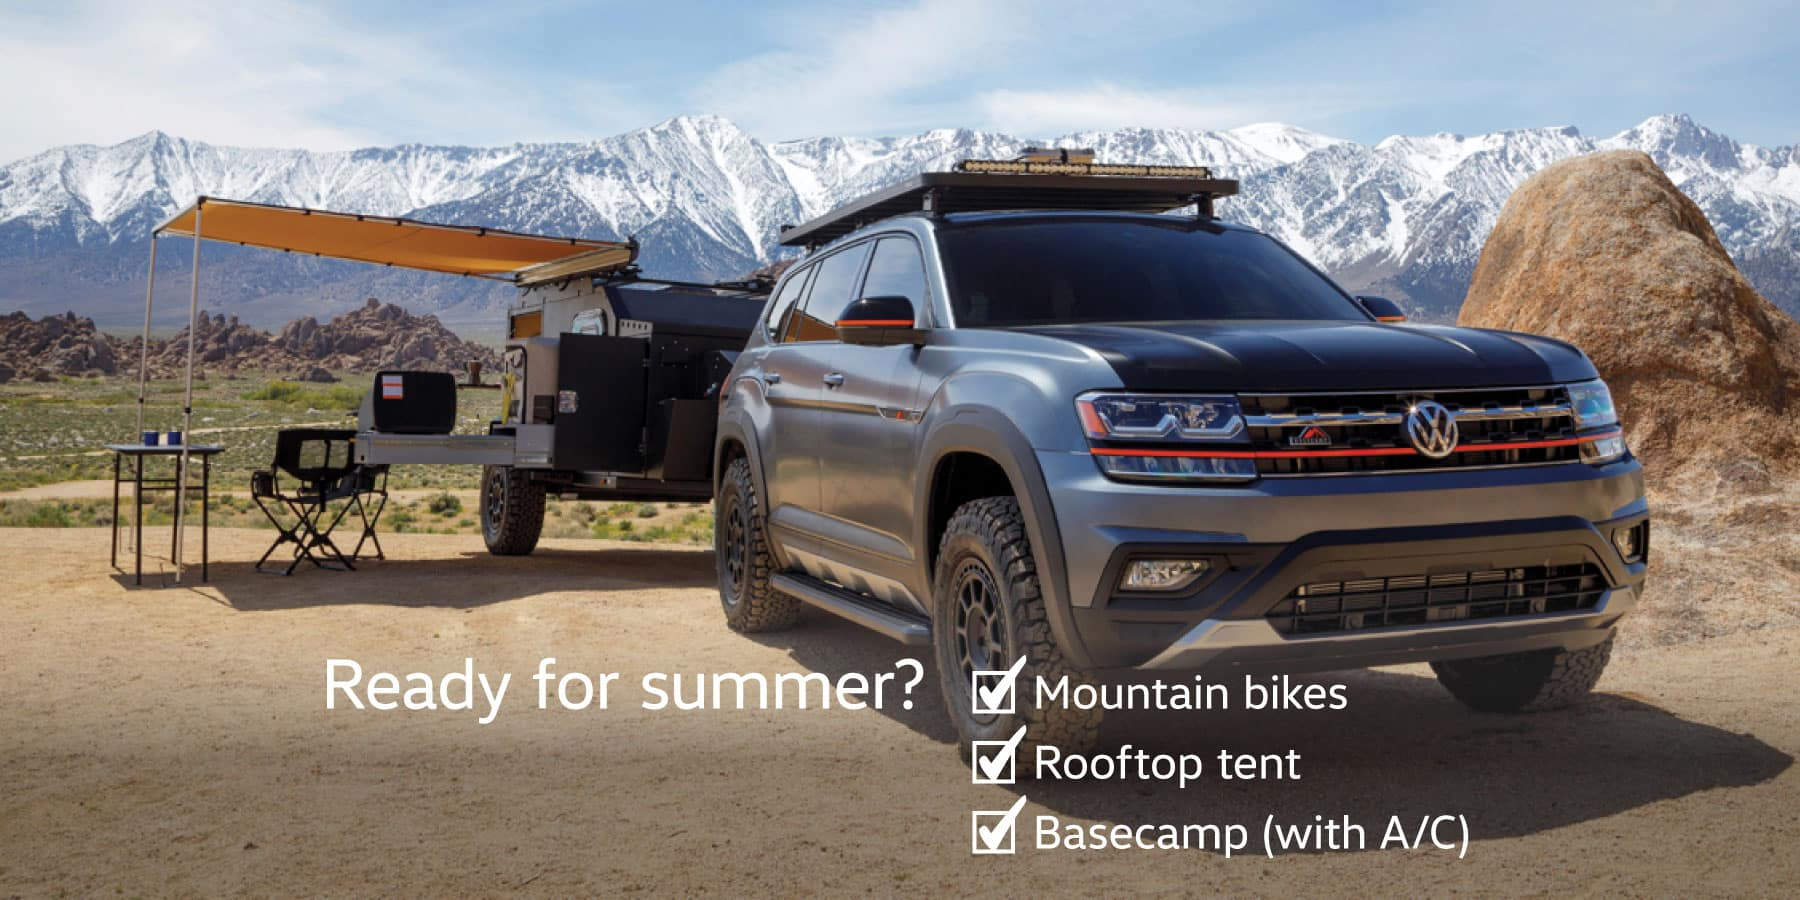 Autobahn Volkswagen Fort Worth | Ready for Summer?